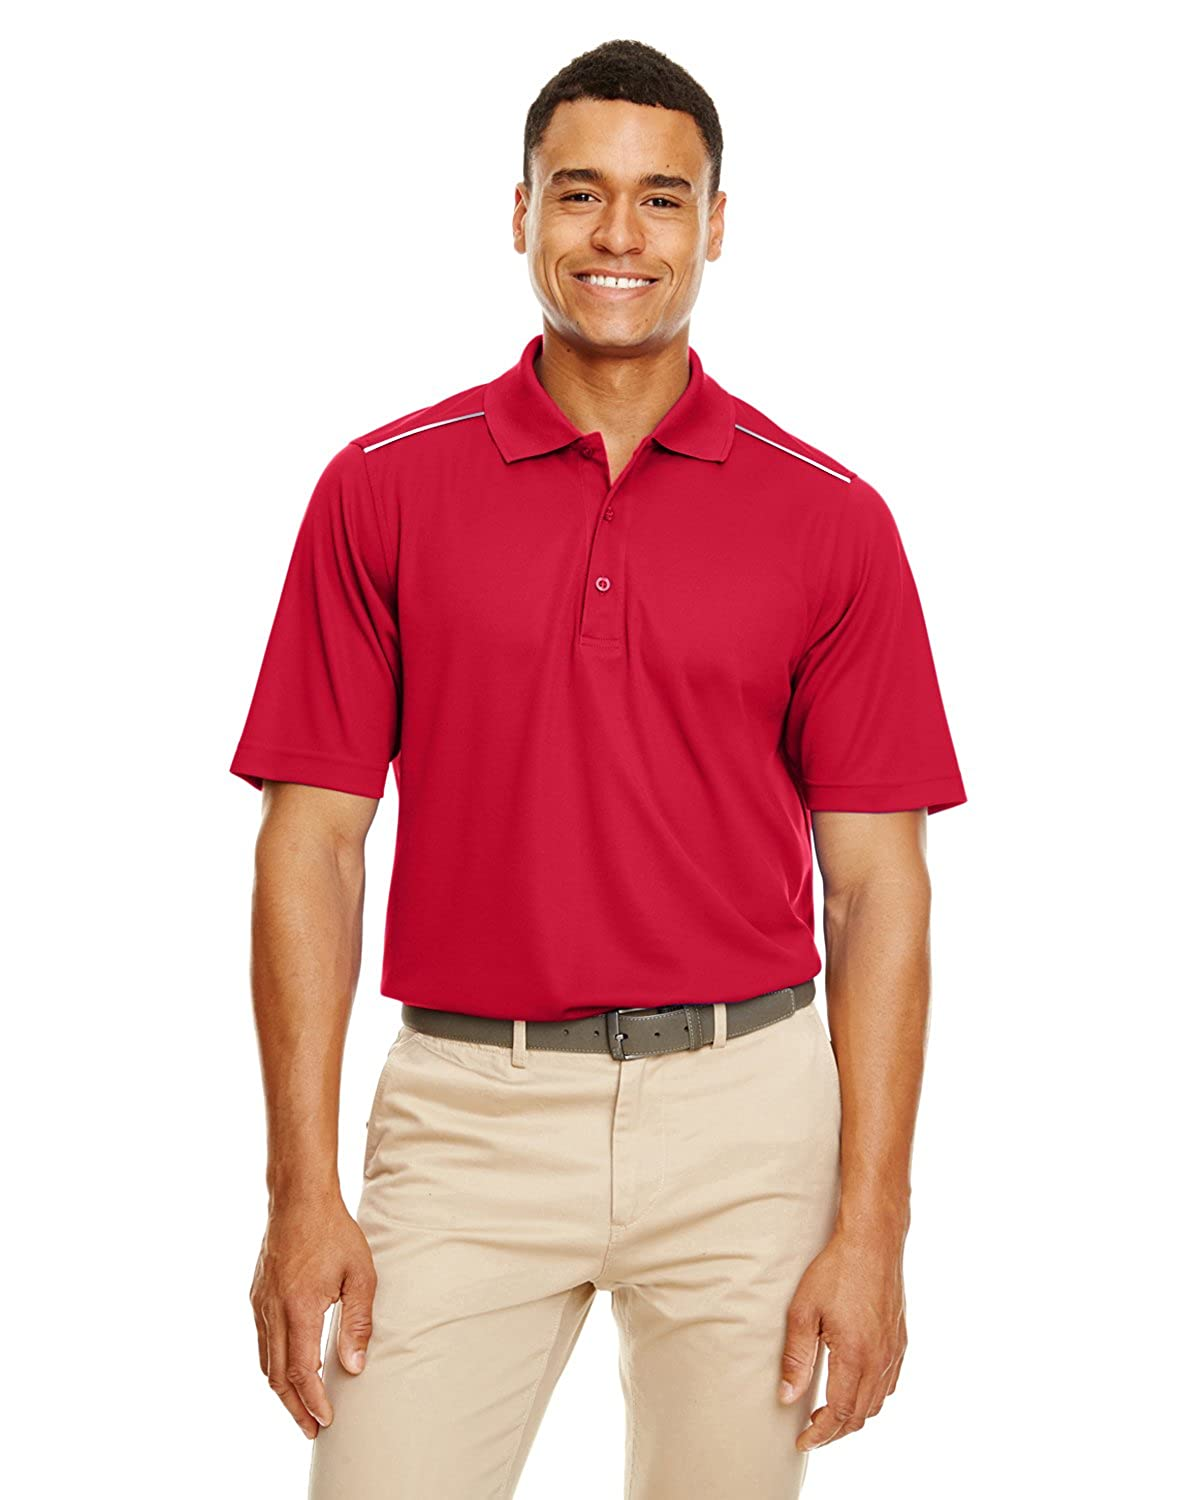 Ash City Core 365 Mens Radiant Performance Piqu/é Polo with Reflective Piping